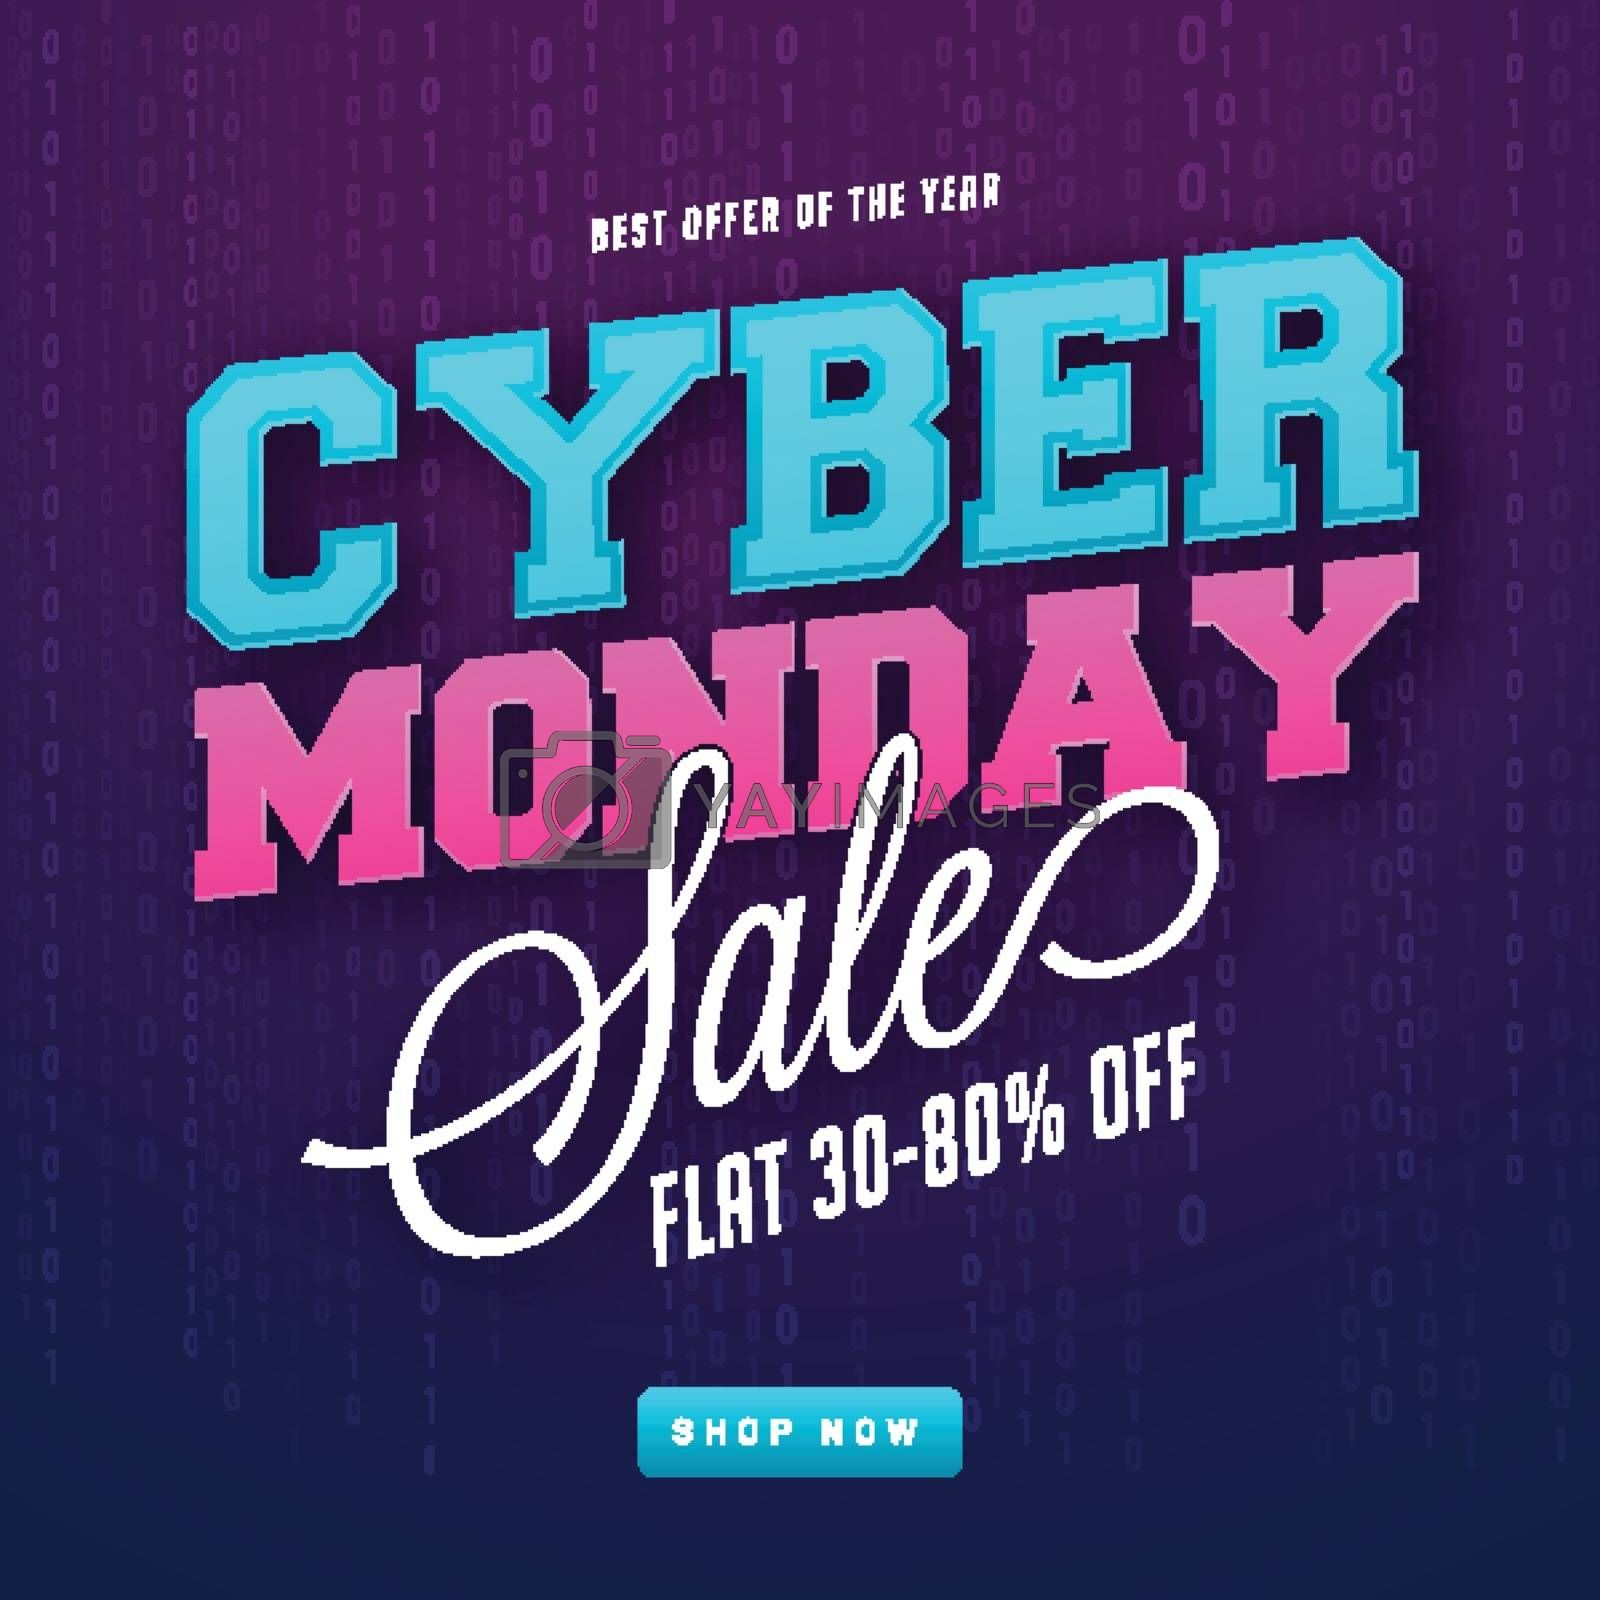 Blue and pink lettering of Cyber Monday sale, flat 30-80% discount offer. Advertising template design.